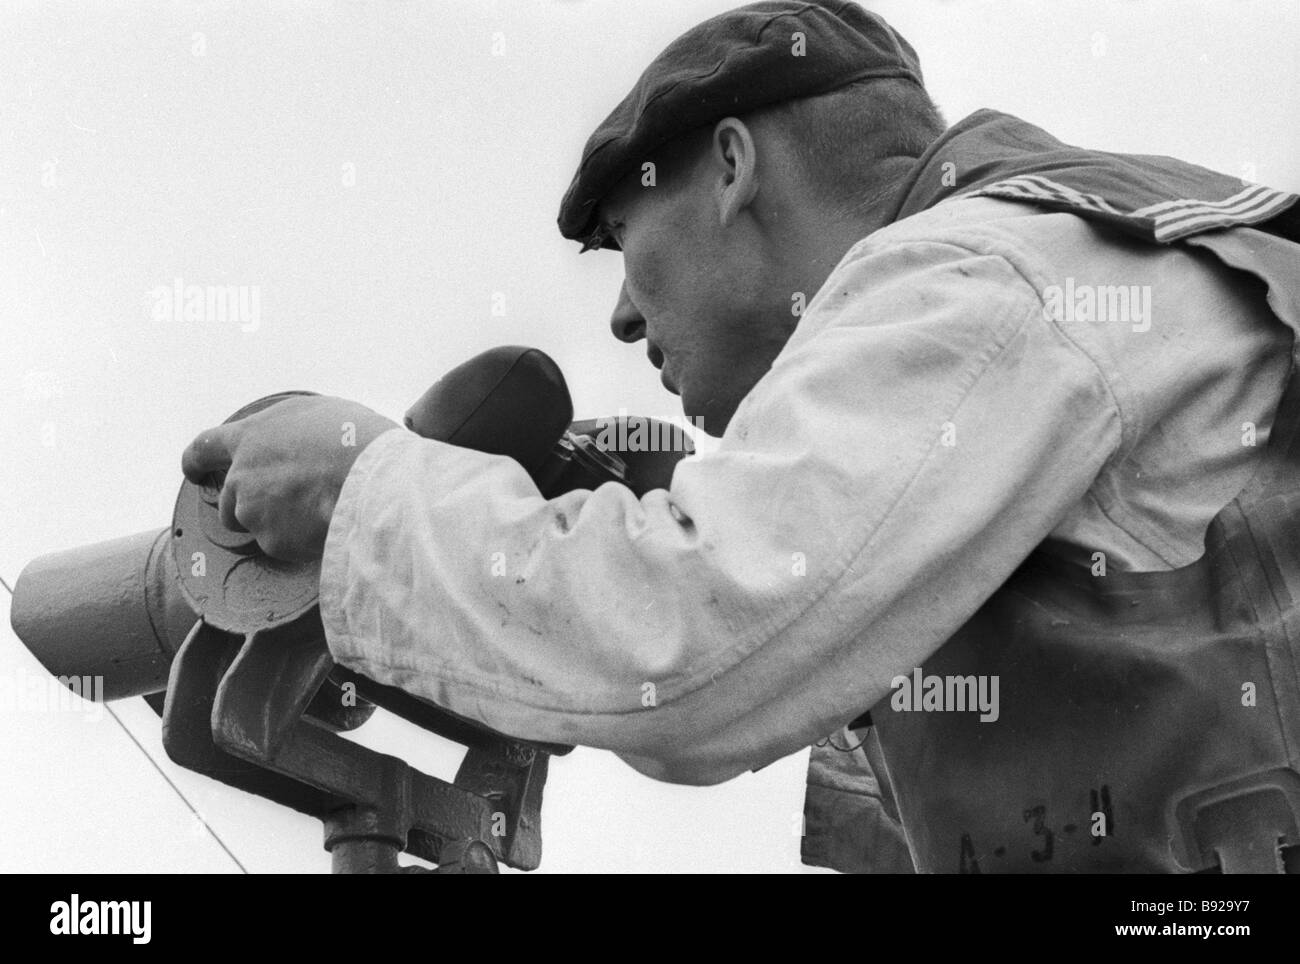 A signalman observer on duty - Stock Image